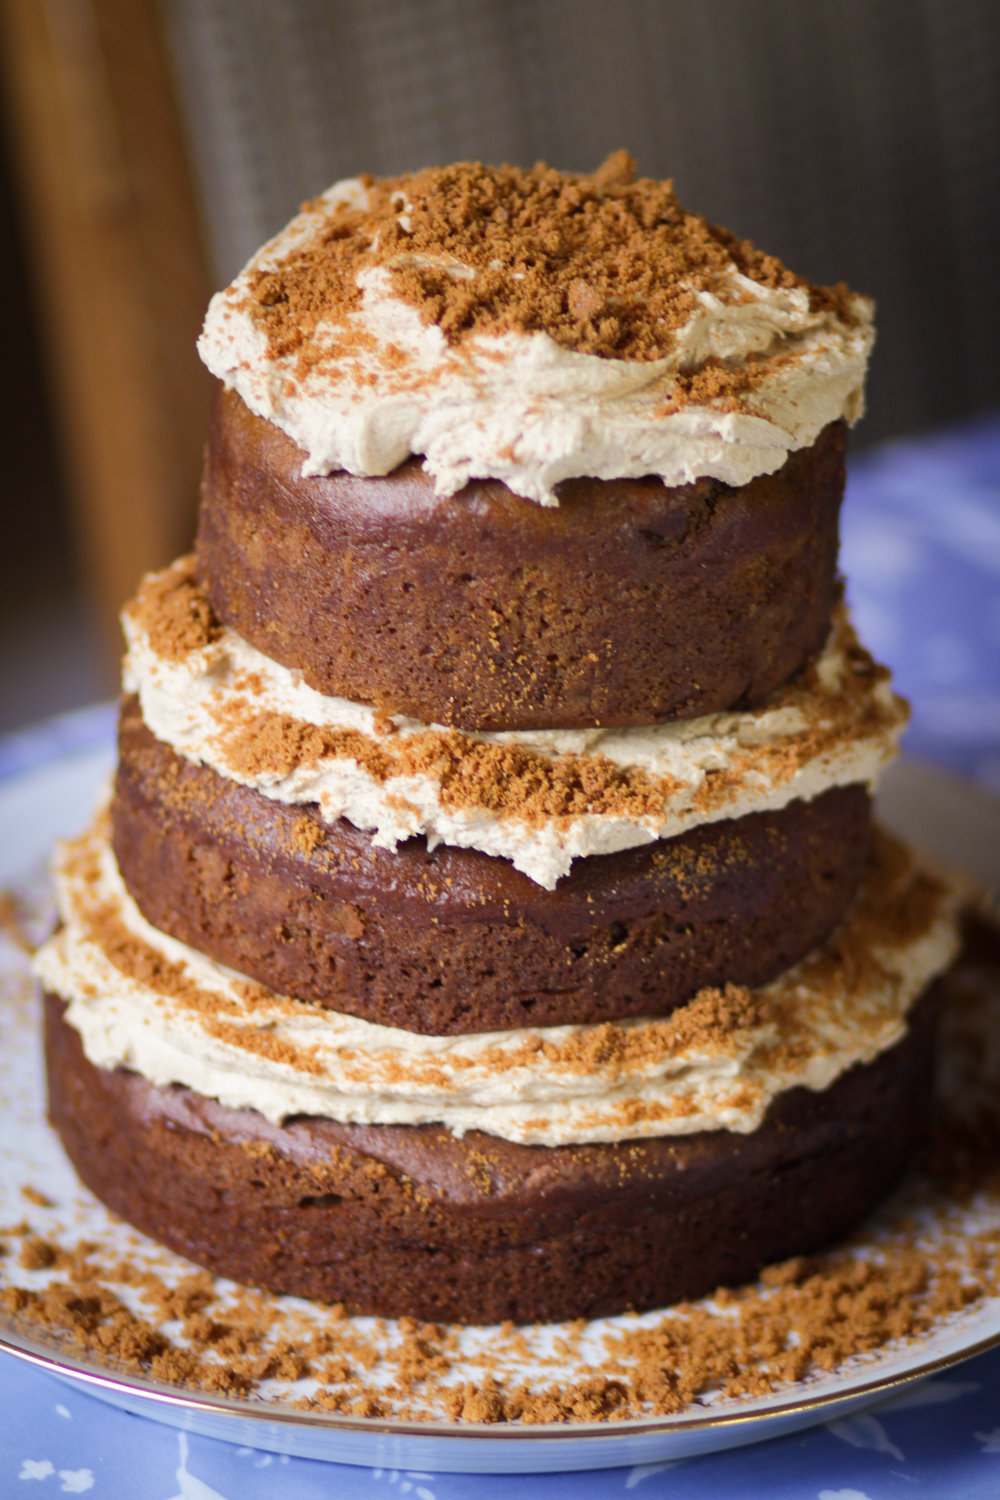 3rd August - a big Biscoff cake